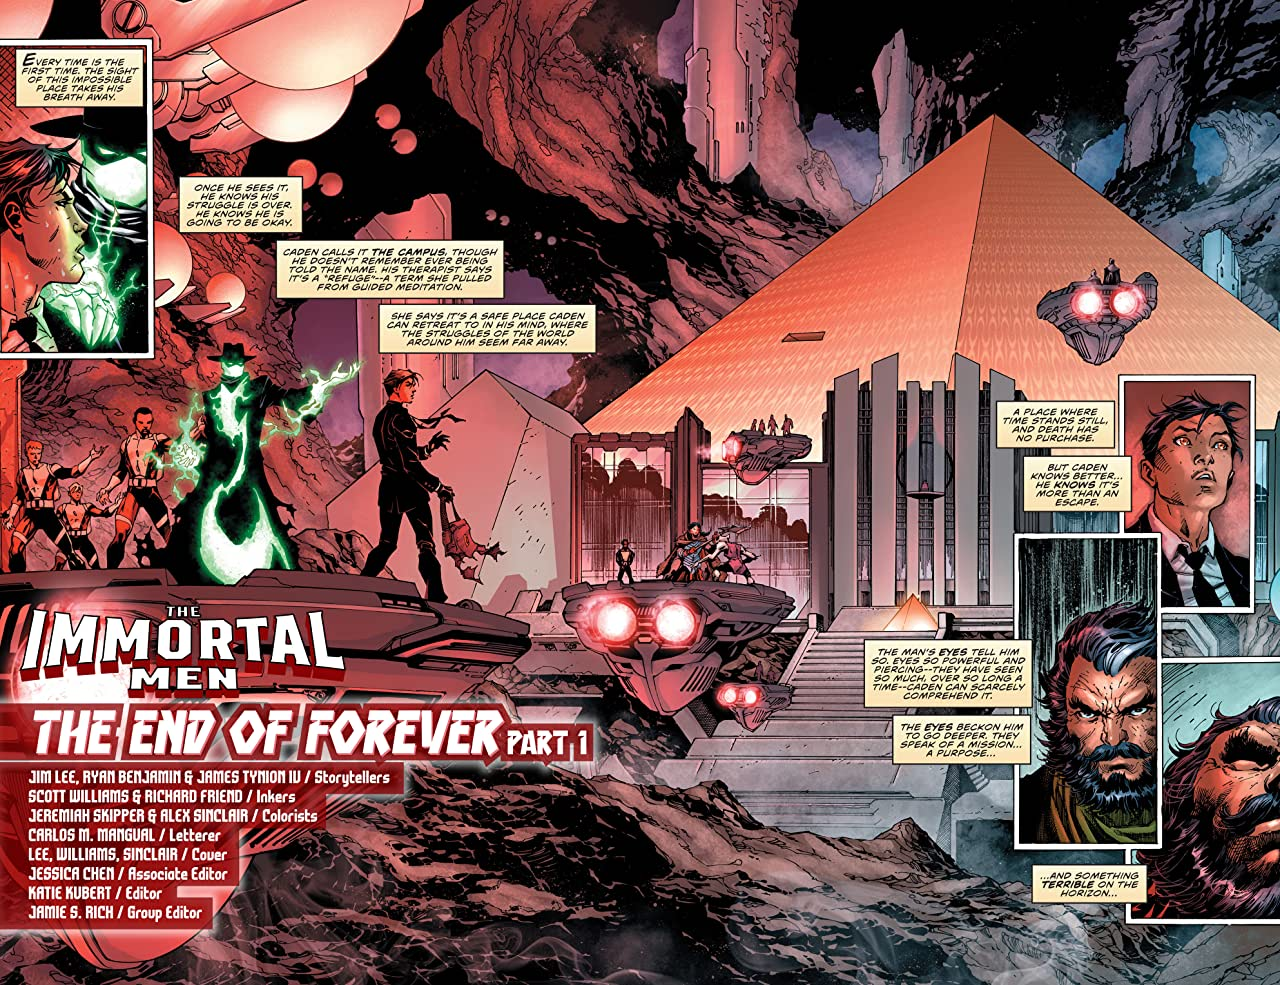 The Immortal Men: The End of Forever